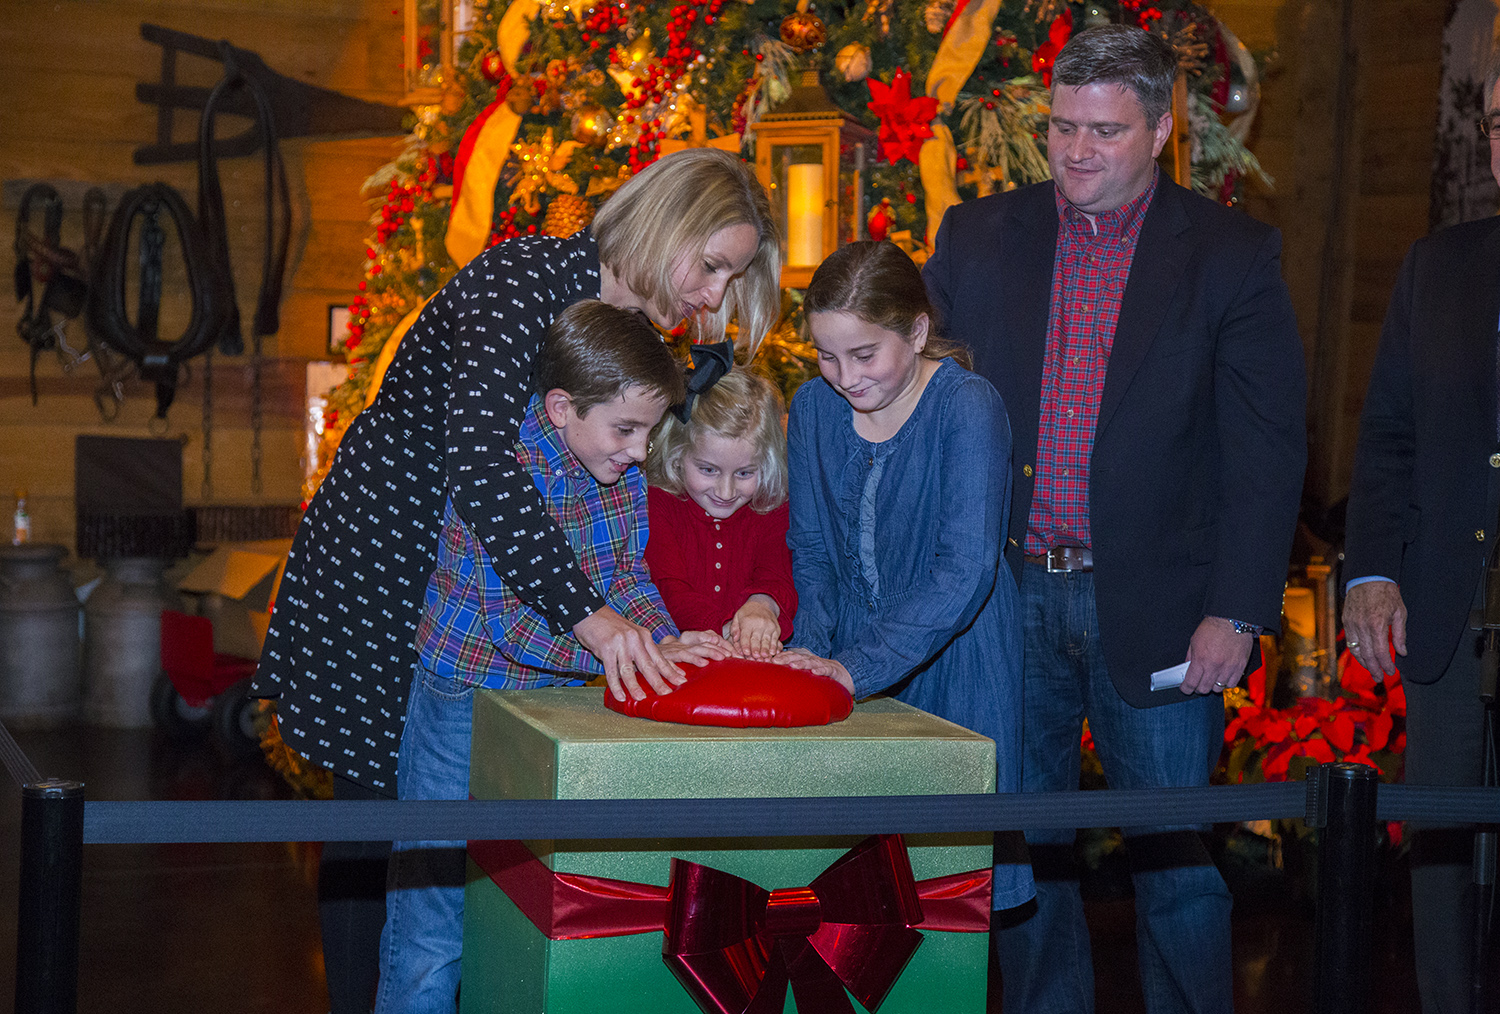 Christmas Archives - Page 5 of 6 - The Billy Graham Library